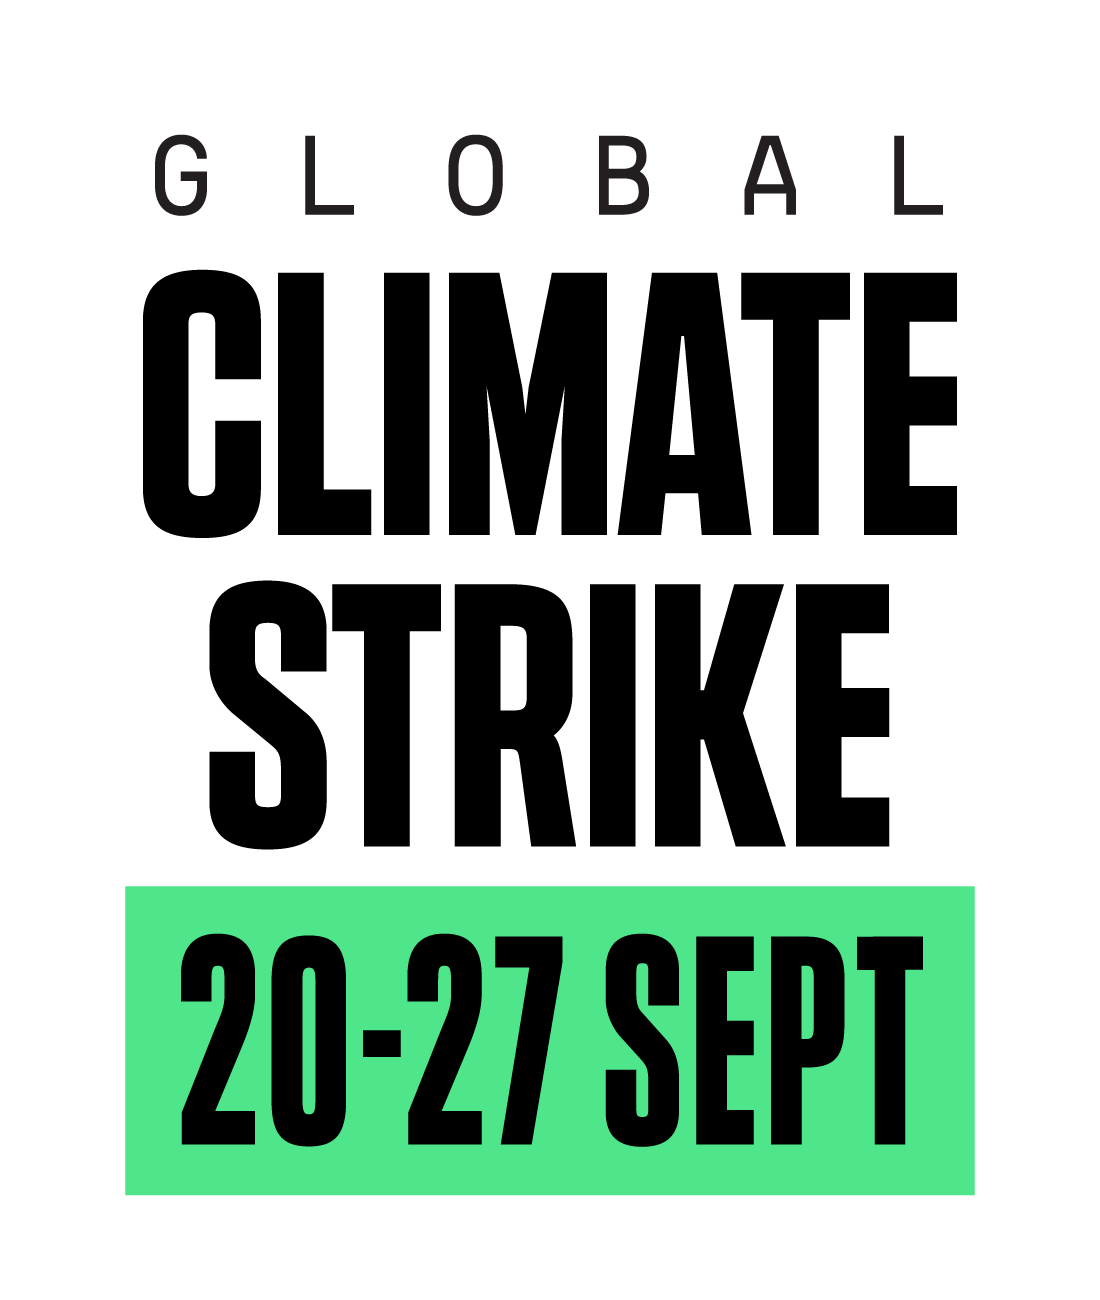 Global Climate Strike